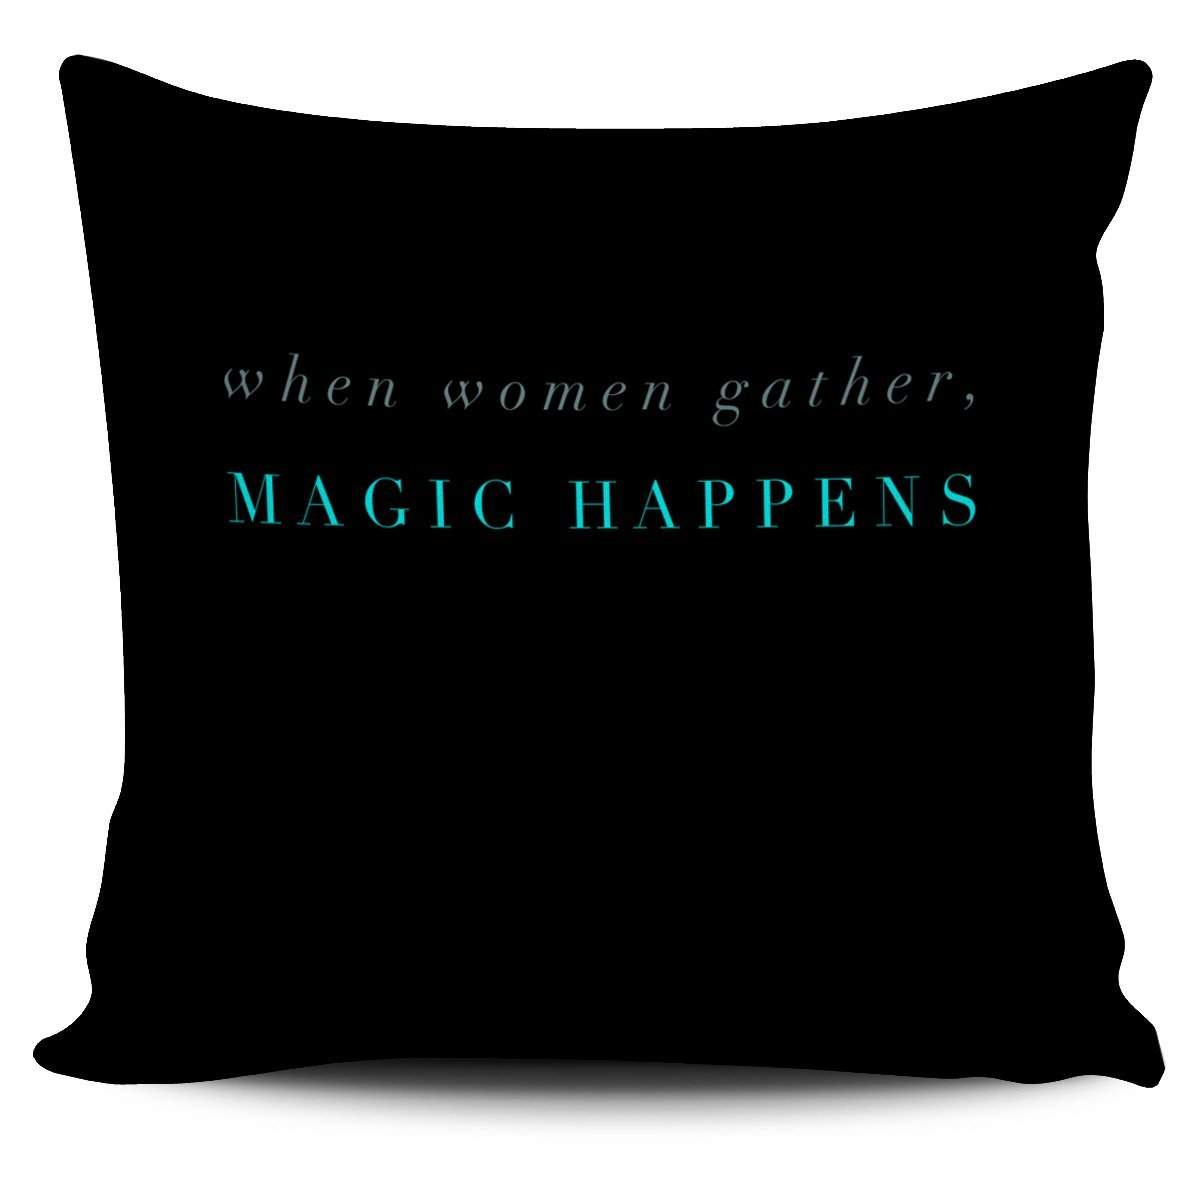 """When women gather, magic happens."" Pillow Cover"